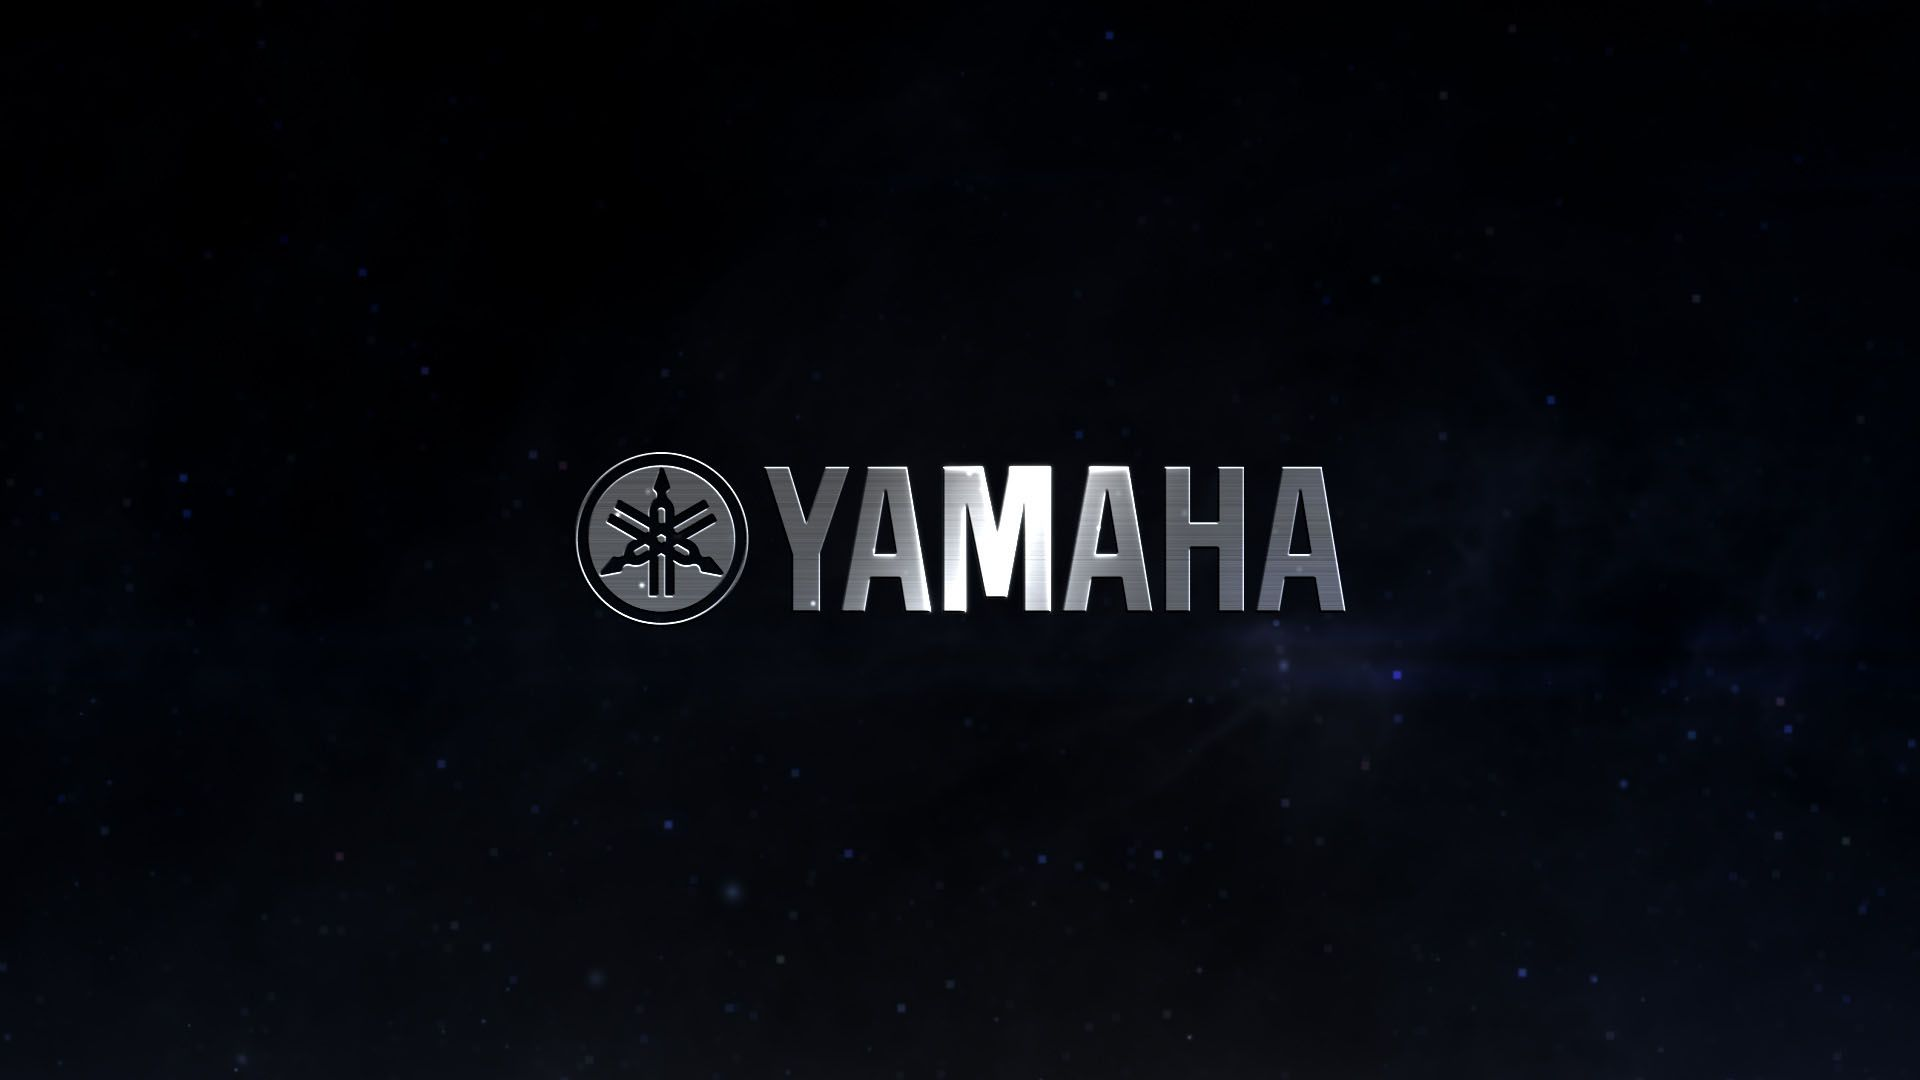 yamaha wallpaper 123 pinterest wallpaper